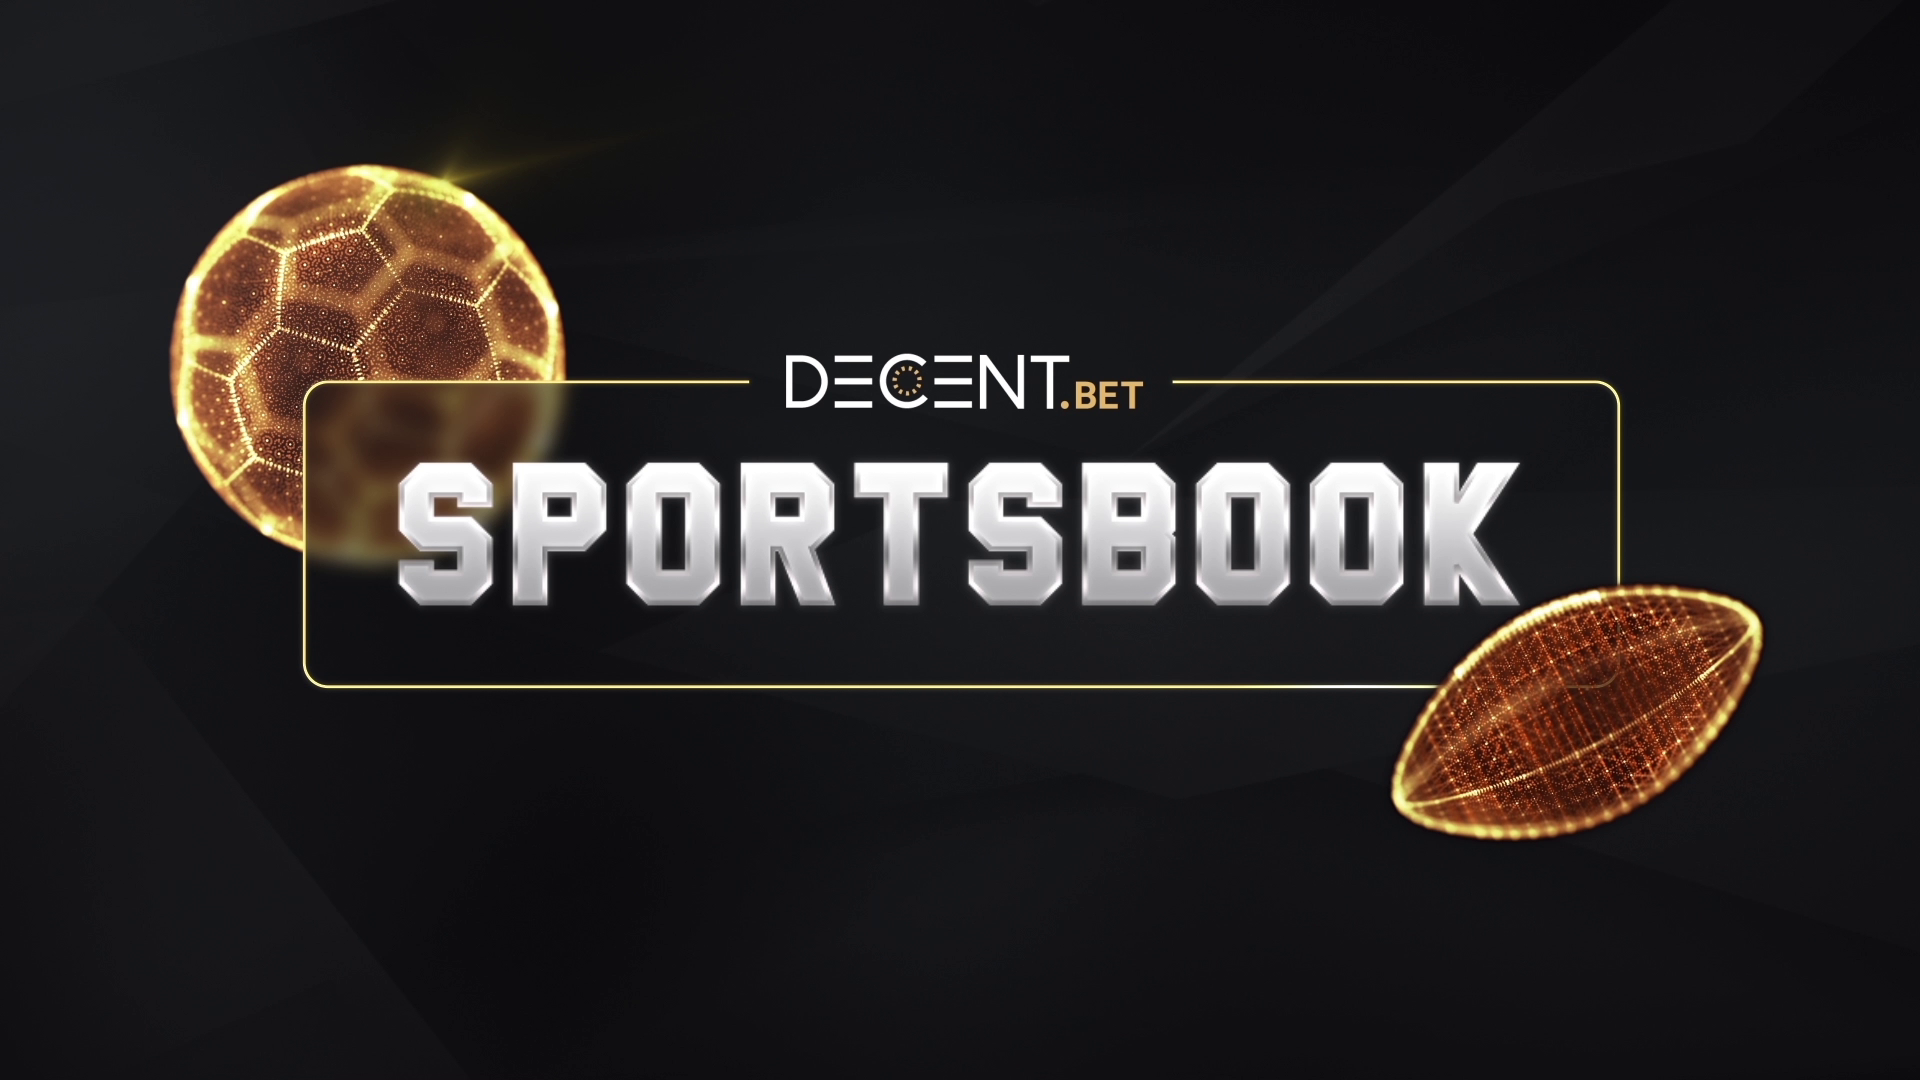 Sportsbook Motion Graphics